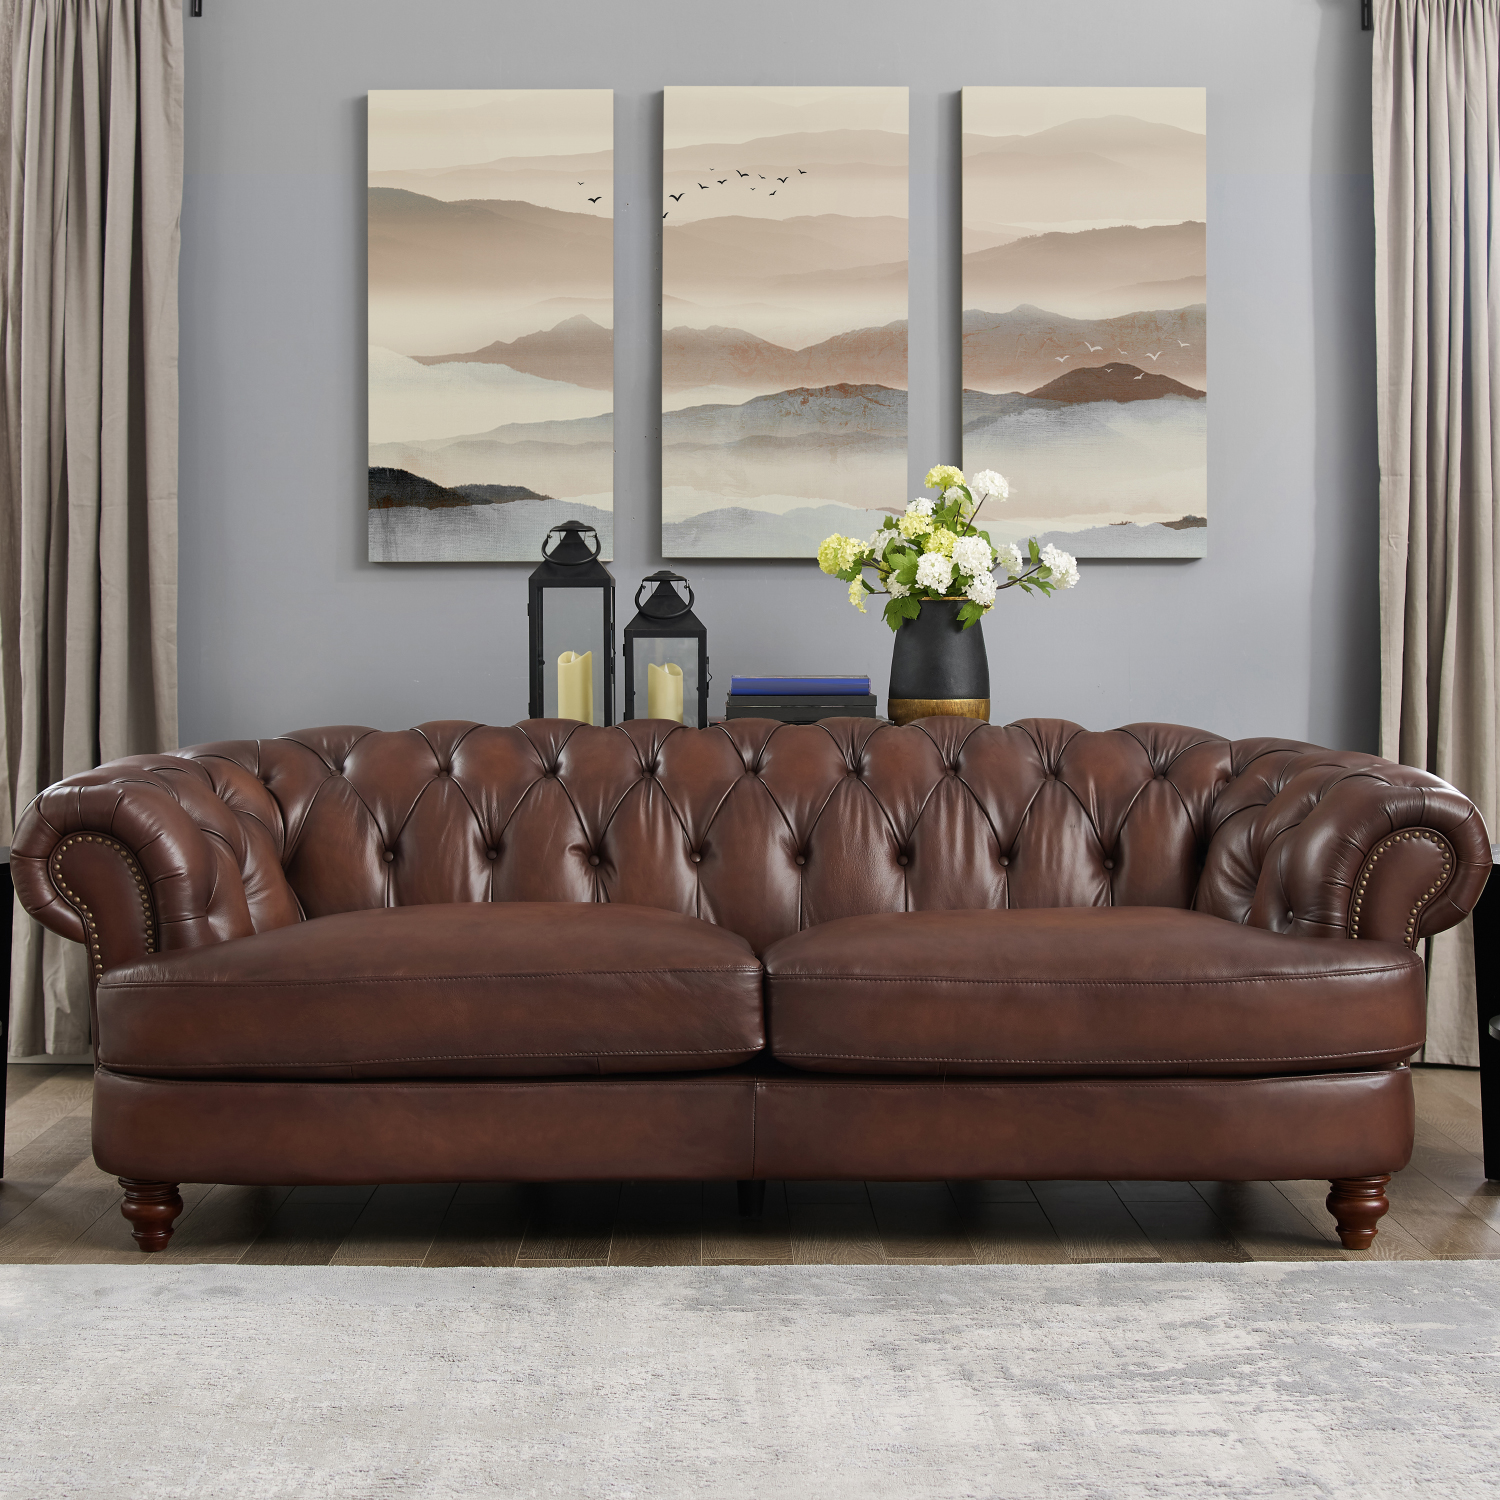 Strange Melton Leather Sofa In Diamond Tufted Dark Brown W Nailheads By Hydeline Leather Ncnpc Chair Design For Home Ncnpcorg